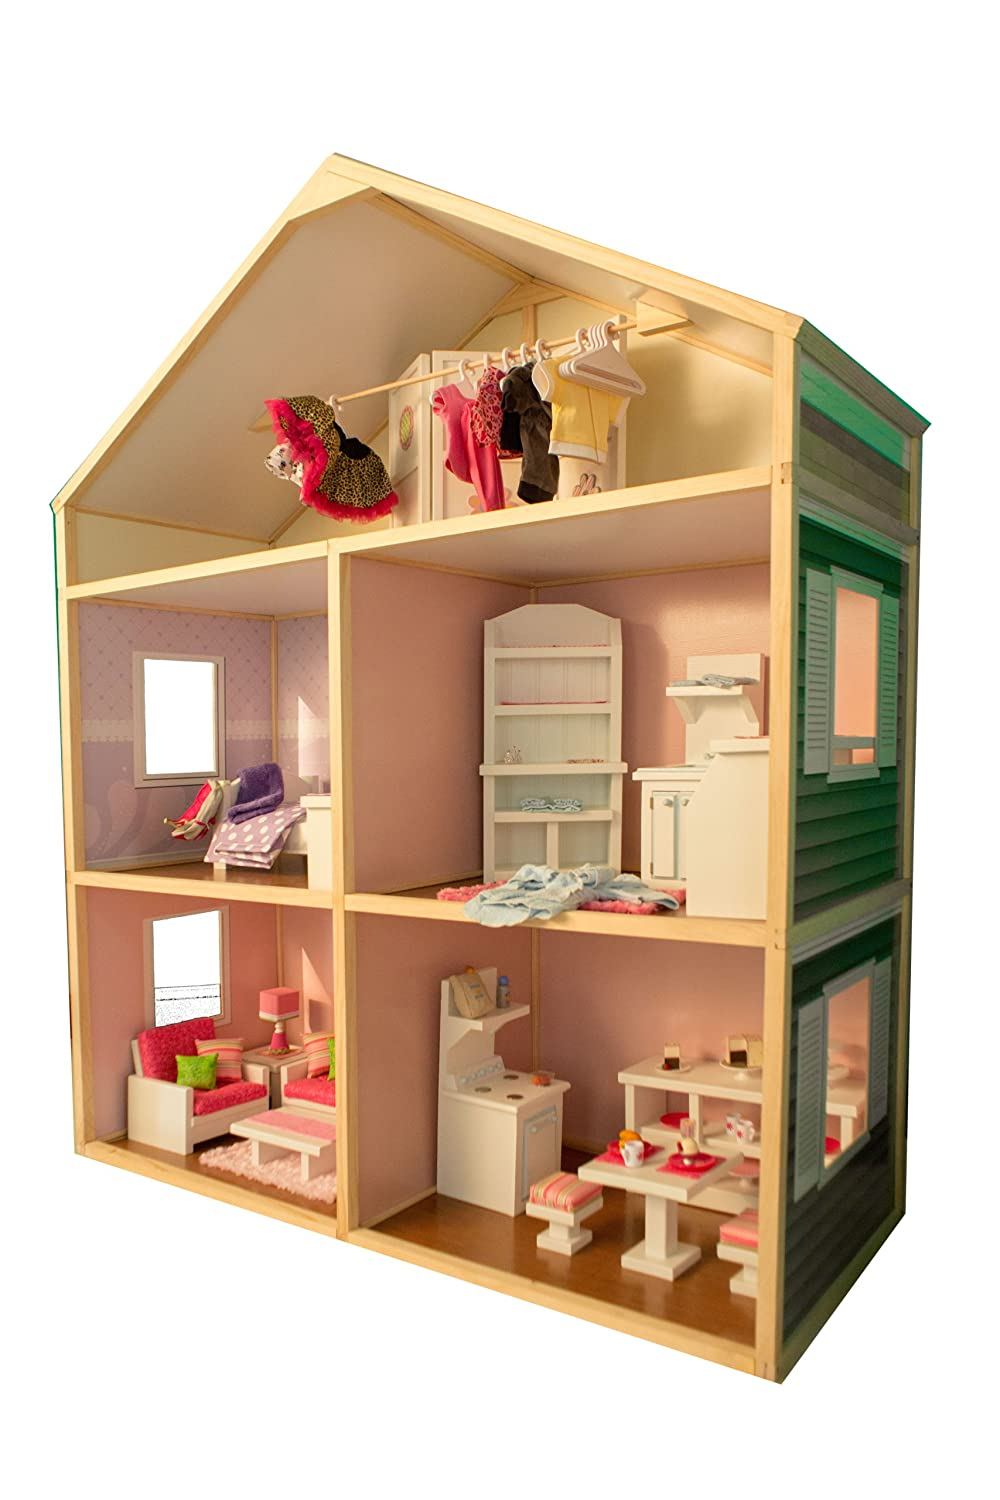 inexpensive dollhouse furniture. Amazon.com: My Girl\u0027s Dollhouse For 18\u0027\u0027 Dolls - Country French Style: Toys \u0026 Games Inexpensive Furniture